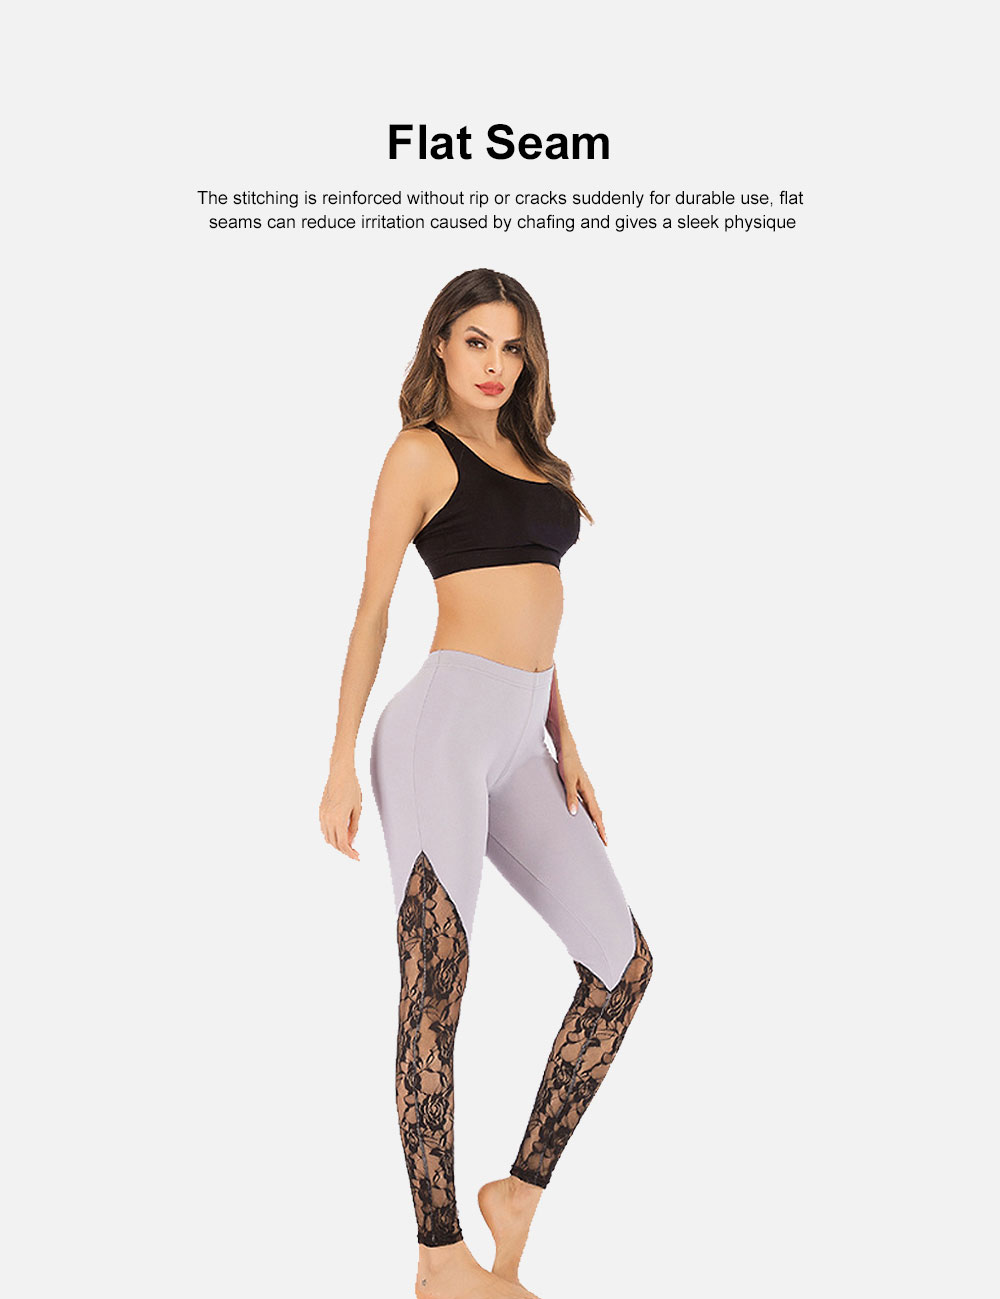 Trendy Lace Yoga Pant Fast-Dry Soft Polyester Trousers Elastic Waistband Breathable Sport Wear Pants for Women Lady 4 Colors 4